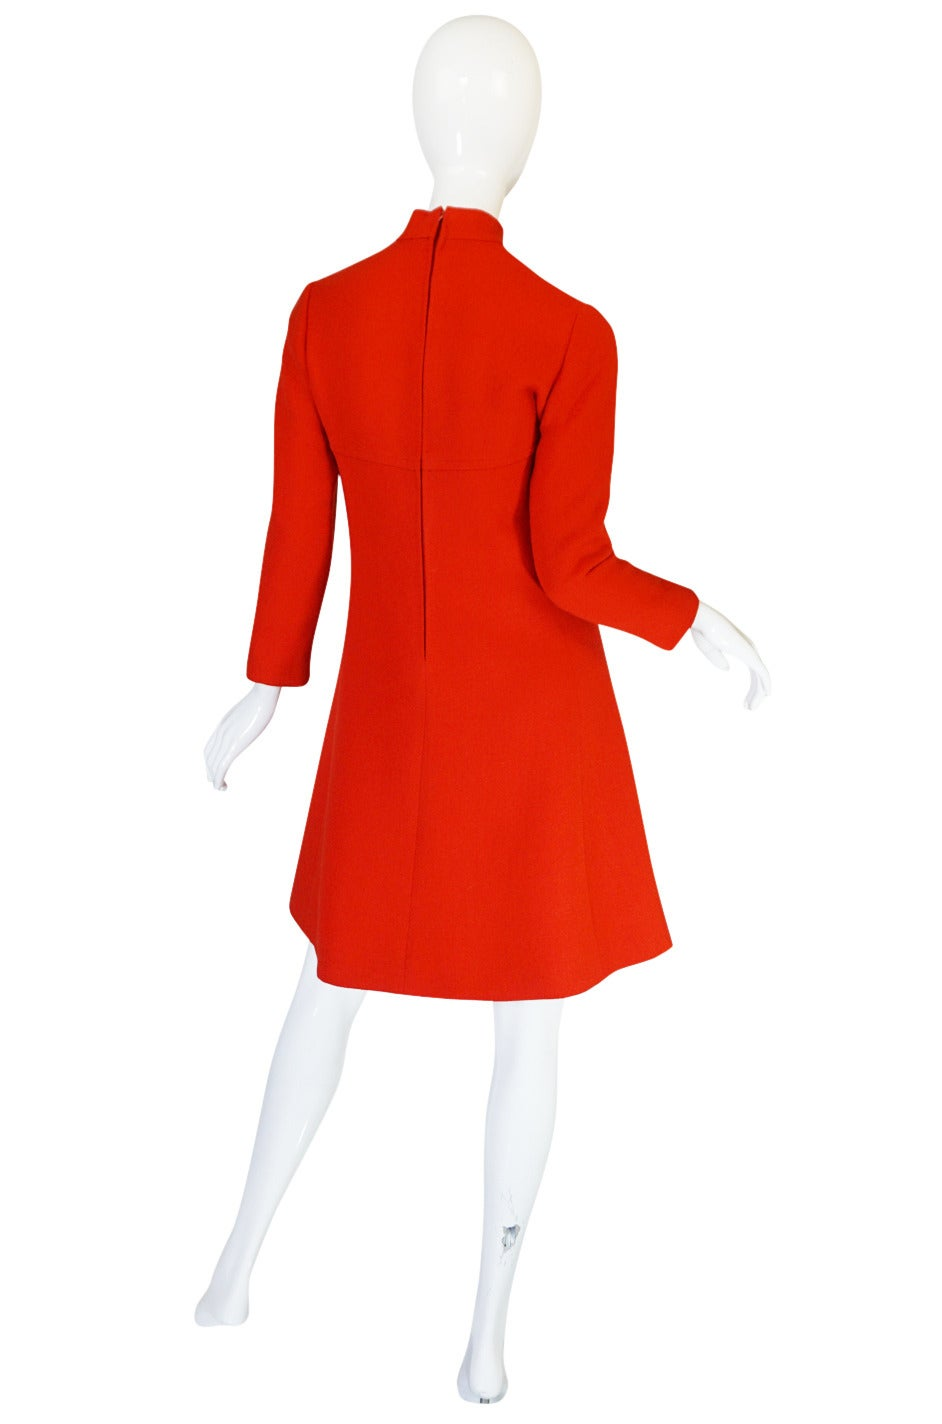 I love both the chic little lines of this dress and its amazing color! In person the color is a true bright vivid tomato red and really makes a statement. The choice of fabric adds to the depth of color - its a lightweight wool with a bit of texture